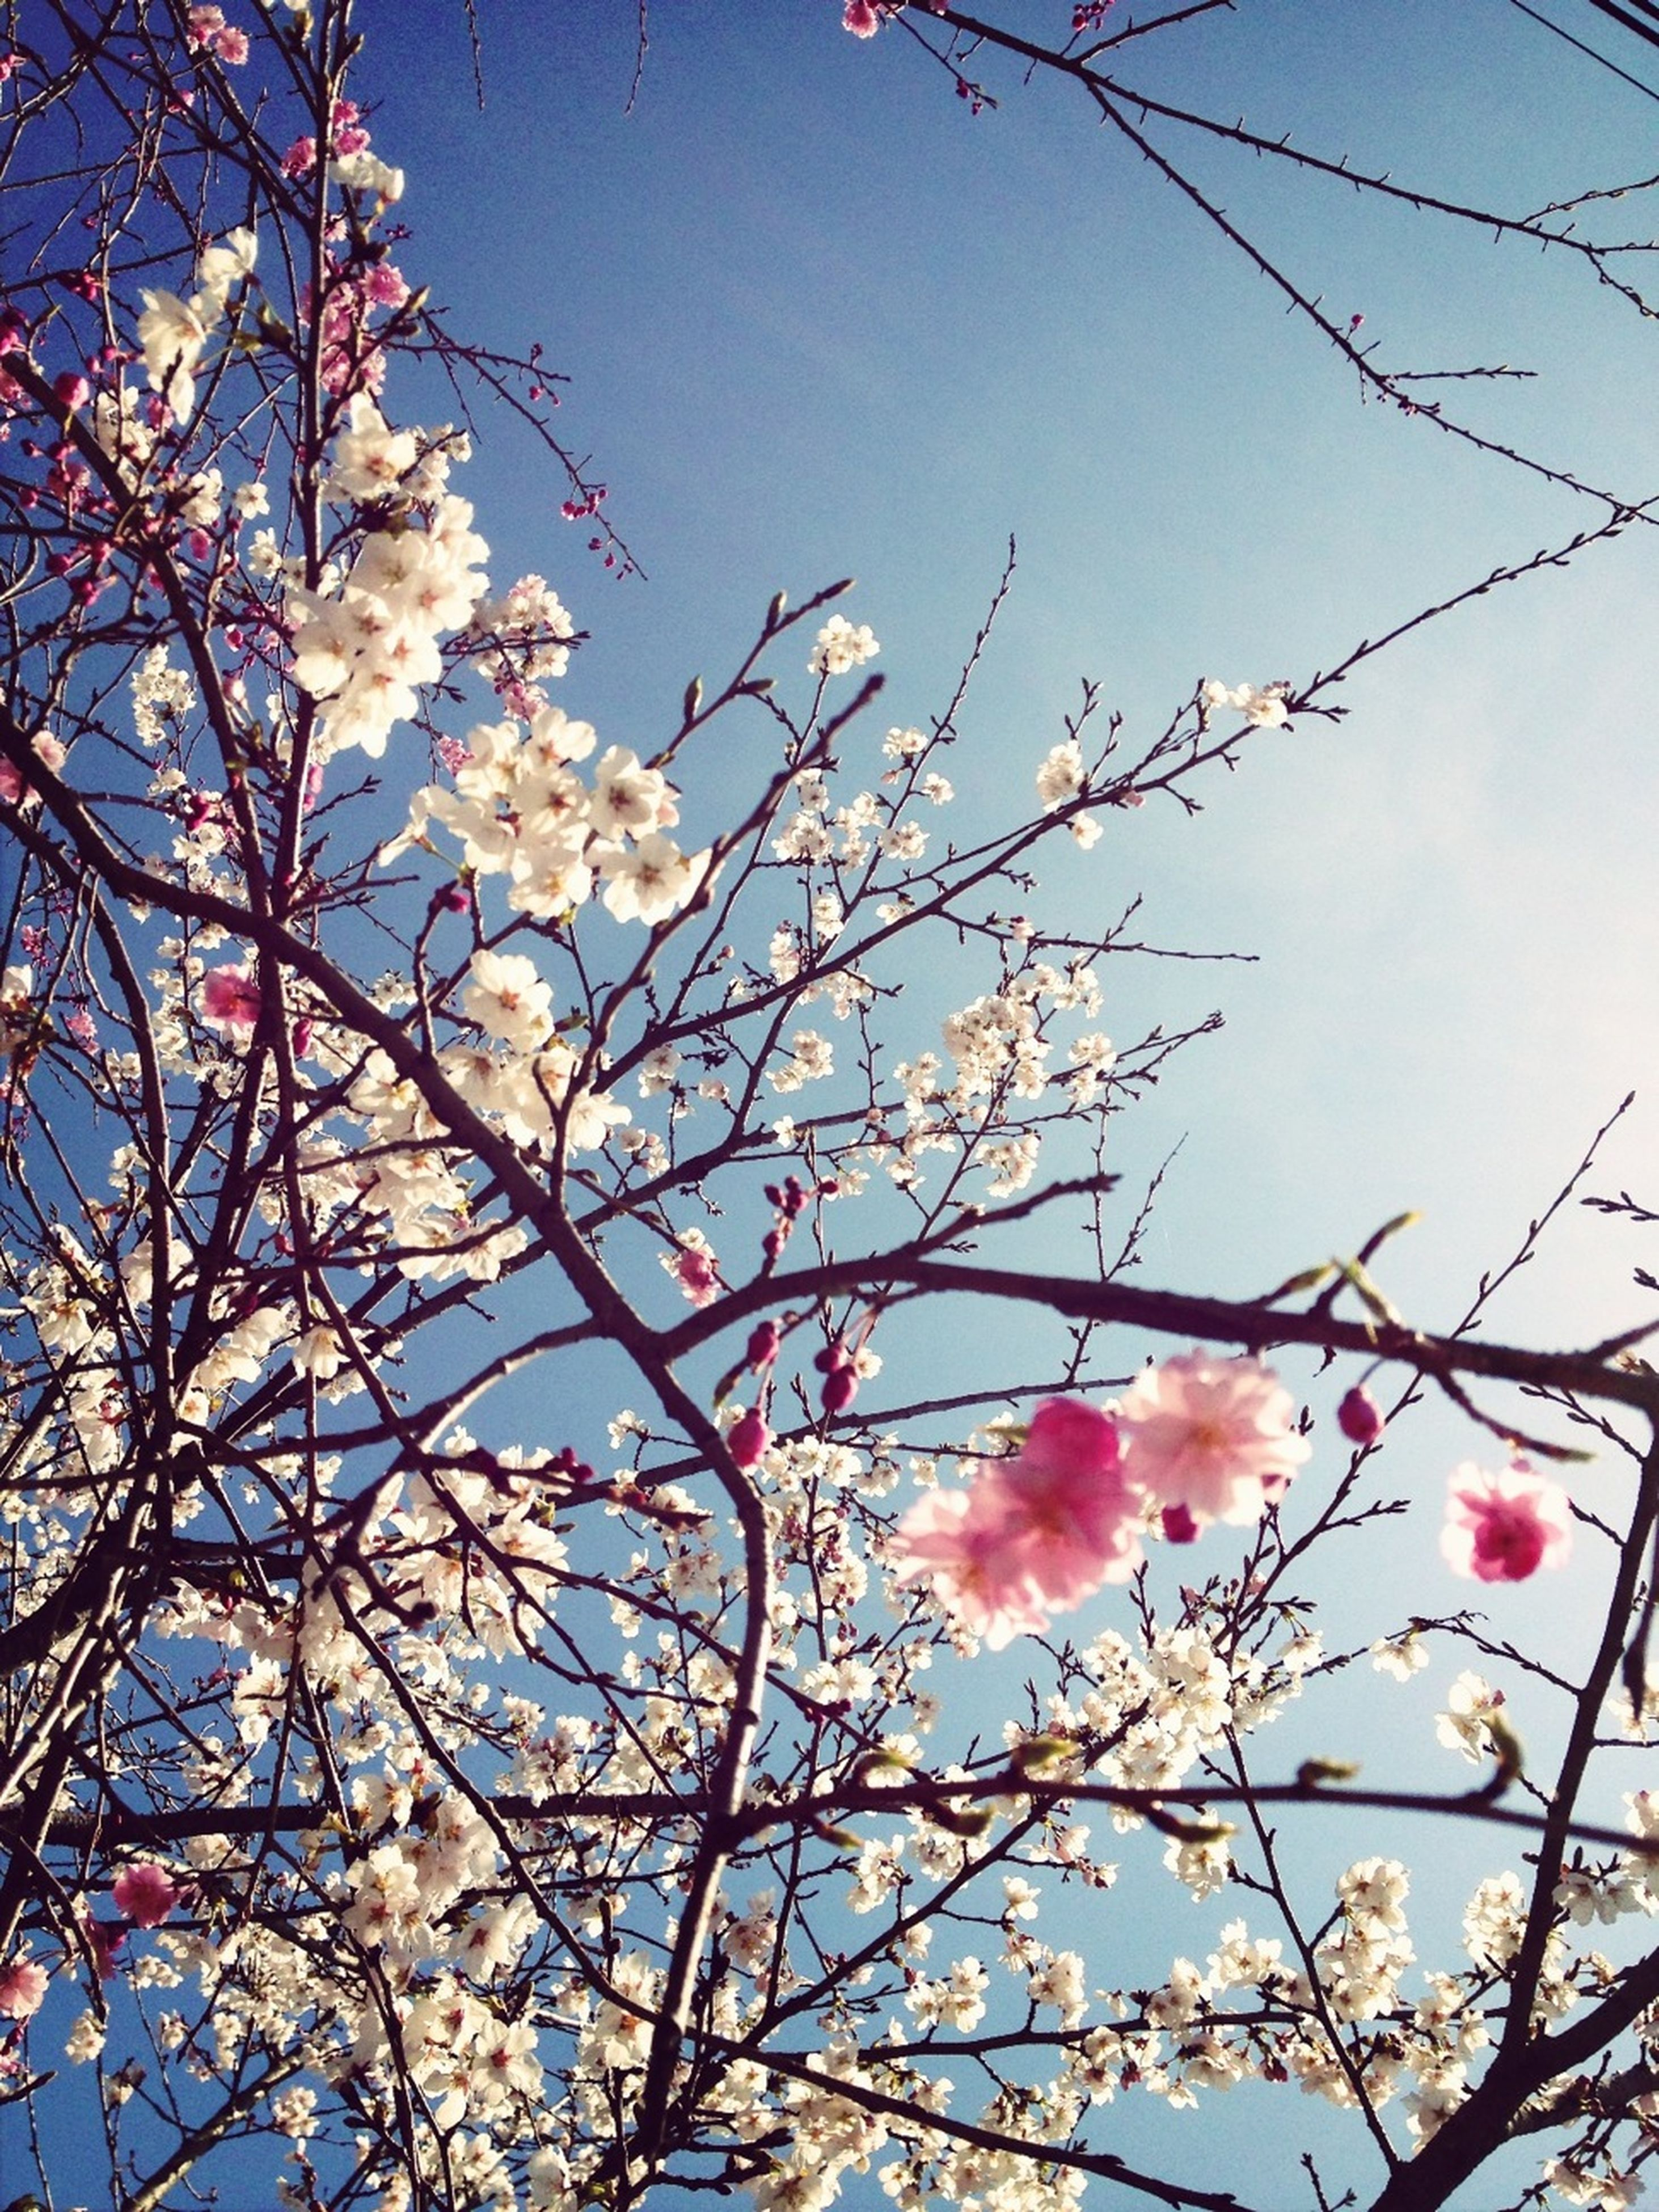 branch, flower, low angle view, tree, freshness, growth, fragility, beauty in nature, blossom, clear sky, nature, sky, cherry blossom, springtime, petal, blue, blooming, twig, cherry tree, in bloom